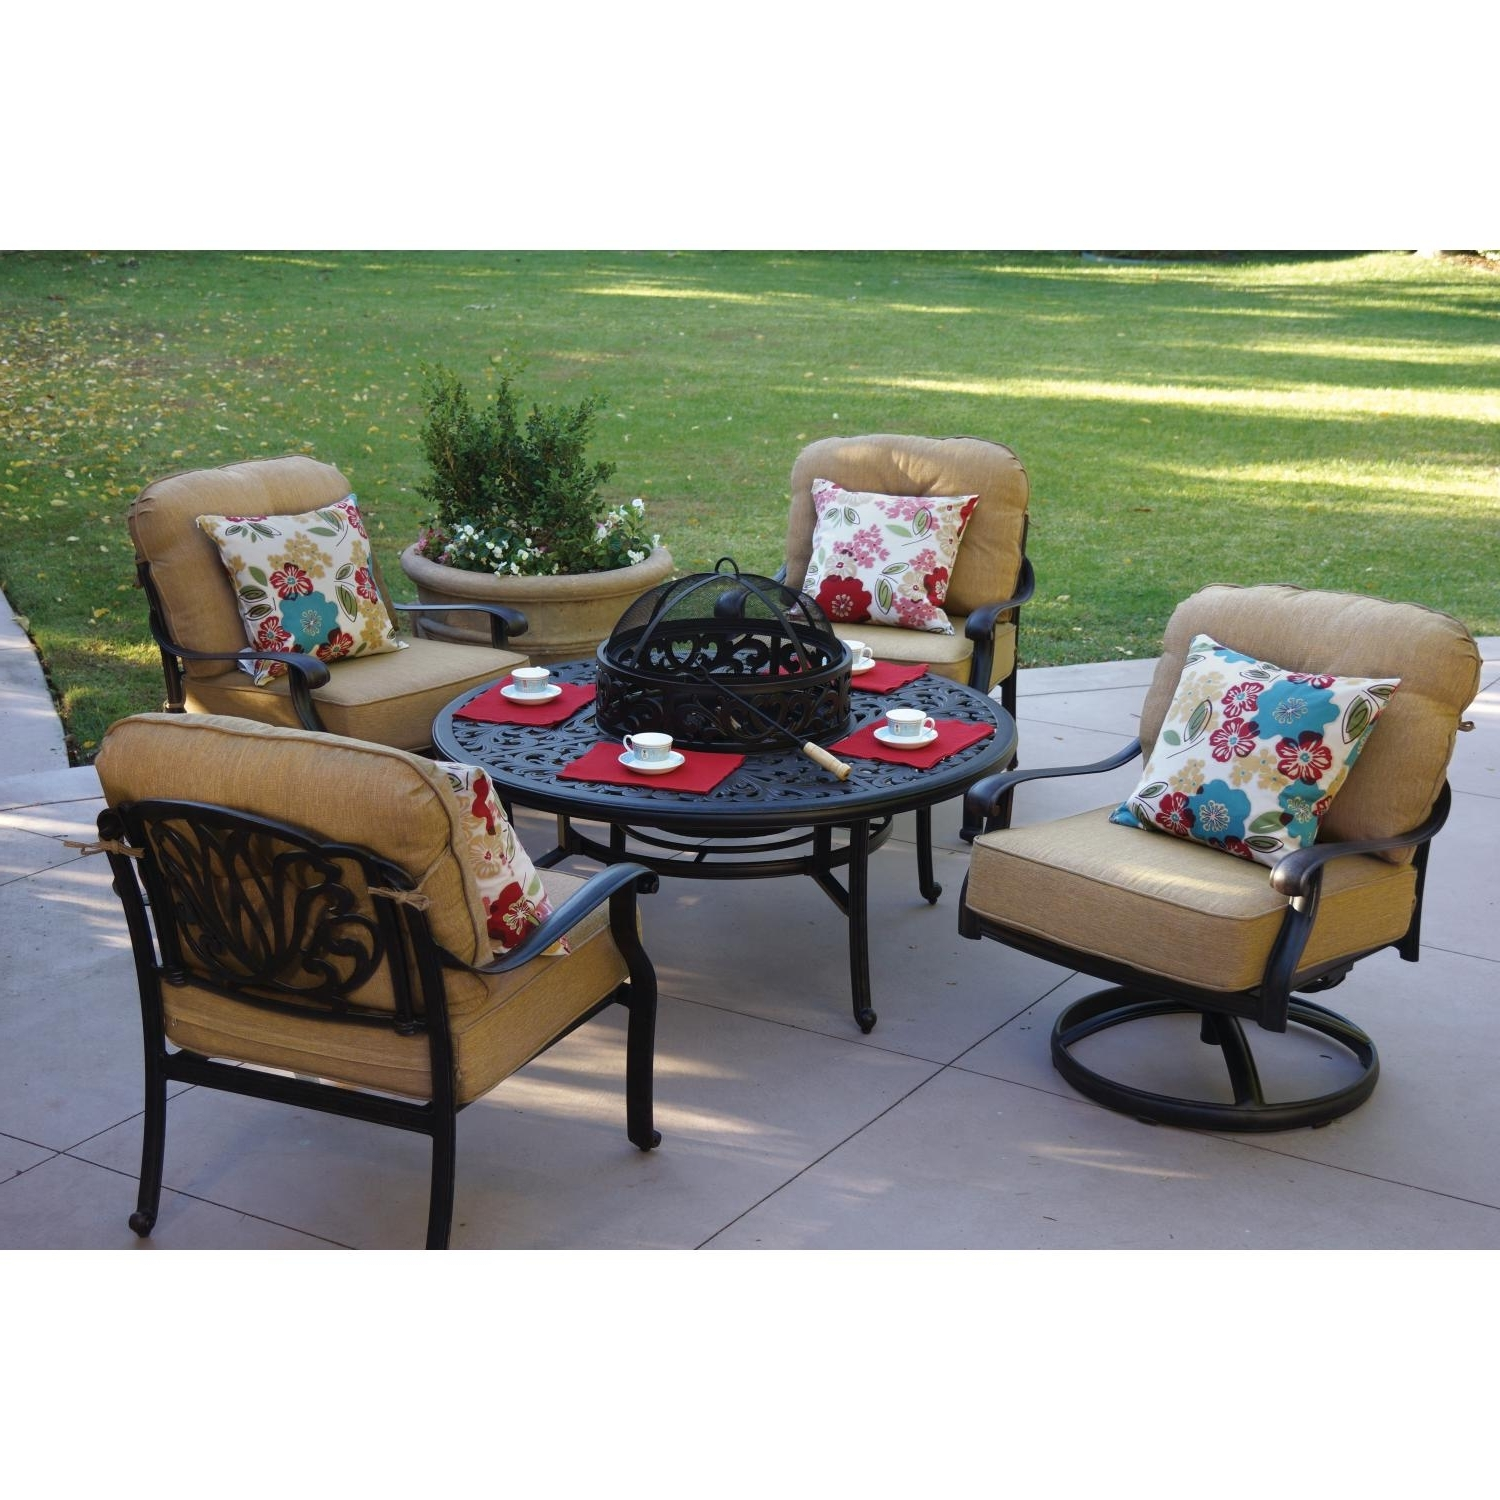 Preferred Darlee Elisabeth 5 Piece Patio Fire Pit Conversation Seating Set Intended For 5 Piece Patio Conversation Sets (View 10 of 15)